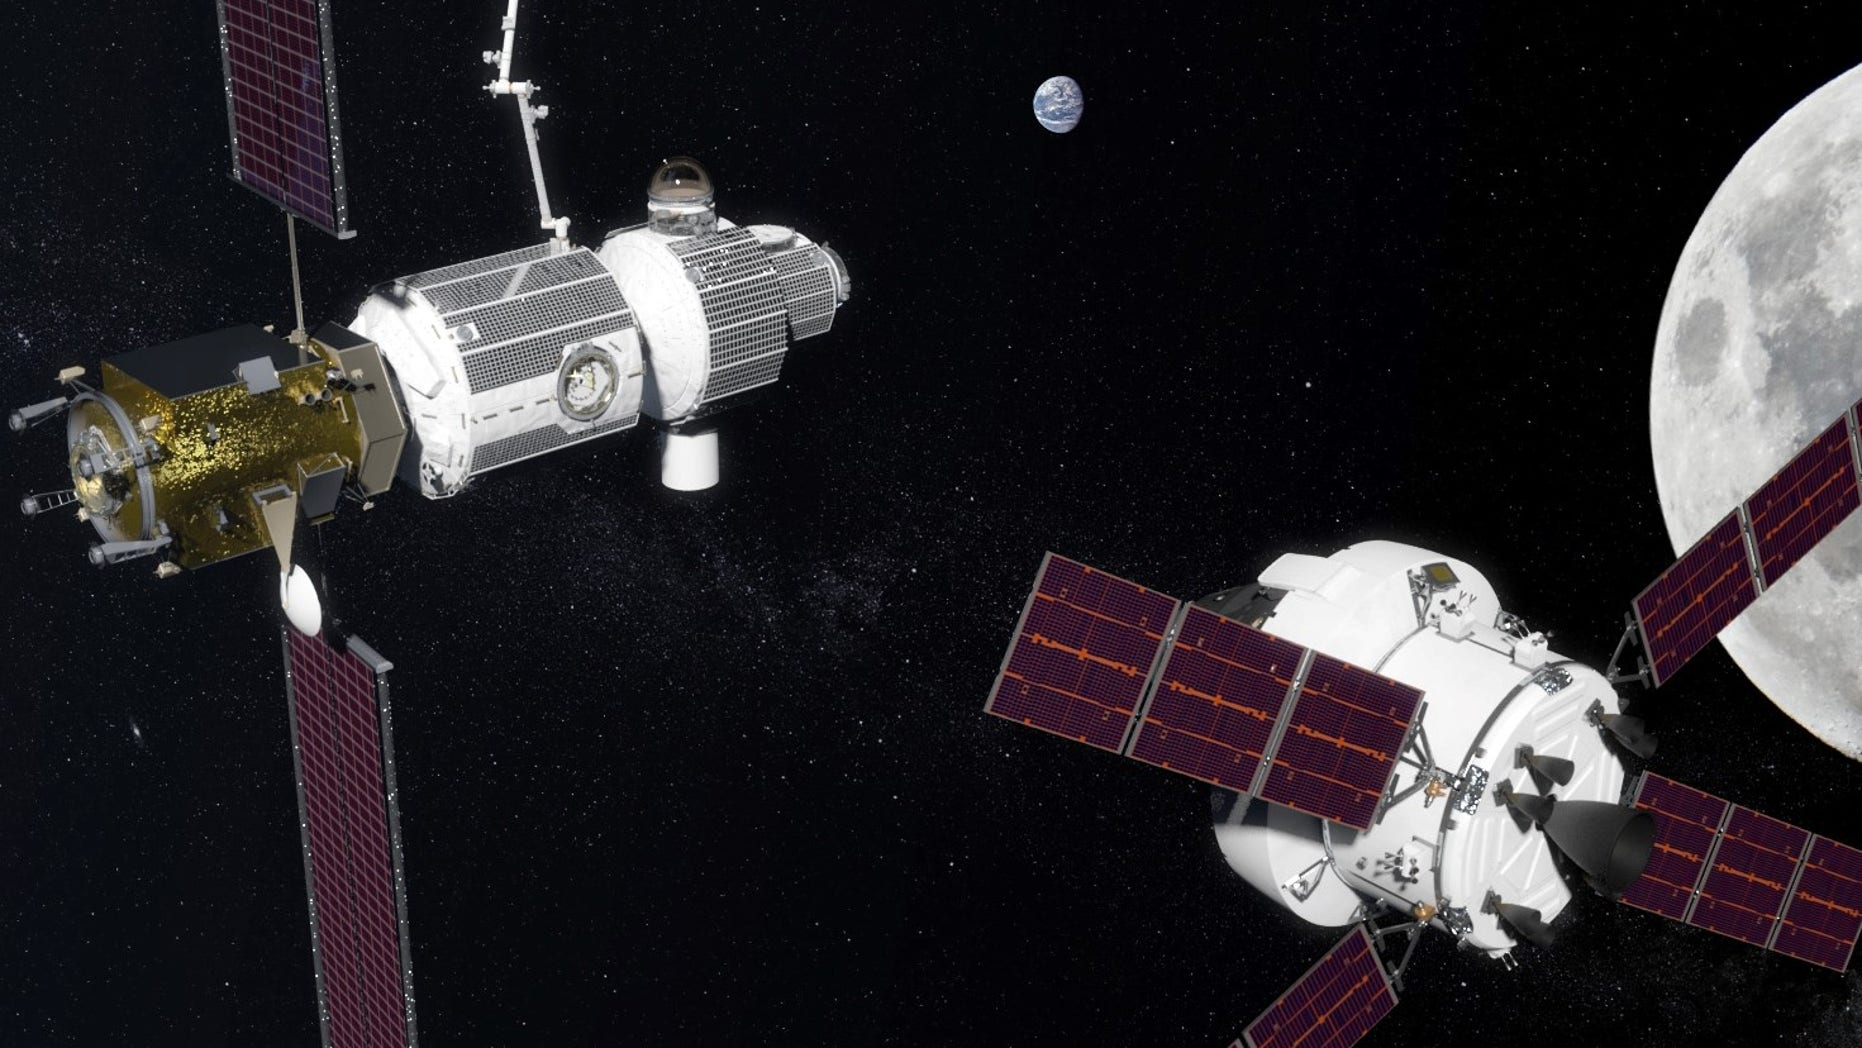 Artist's illustration of NASA's planned Lunar Orbital Platform-Gateway outpost (left), being approached by an Orion spacecraft.